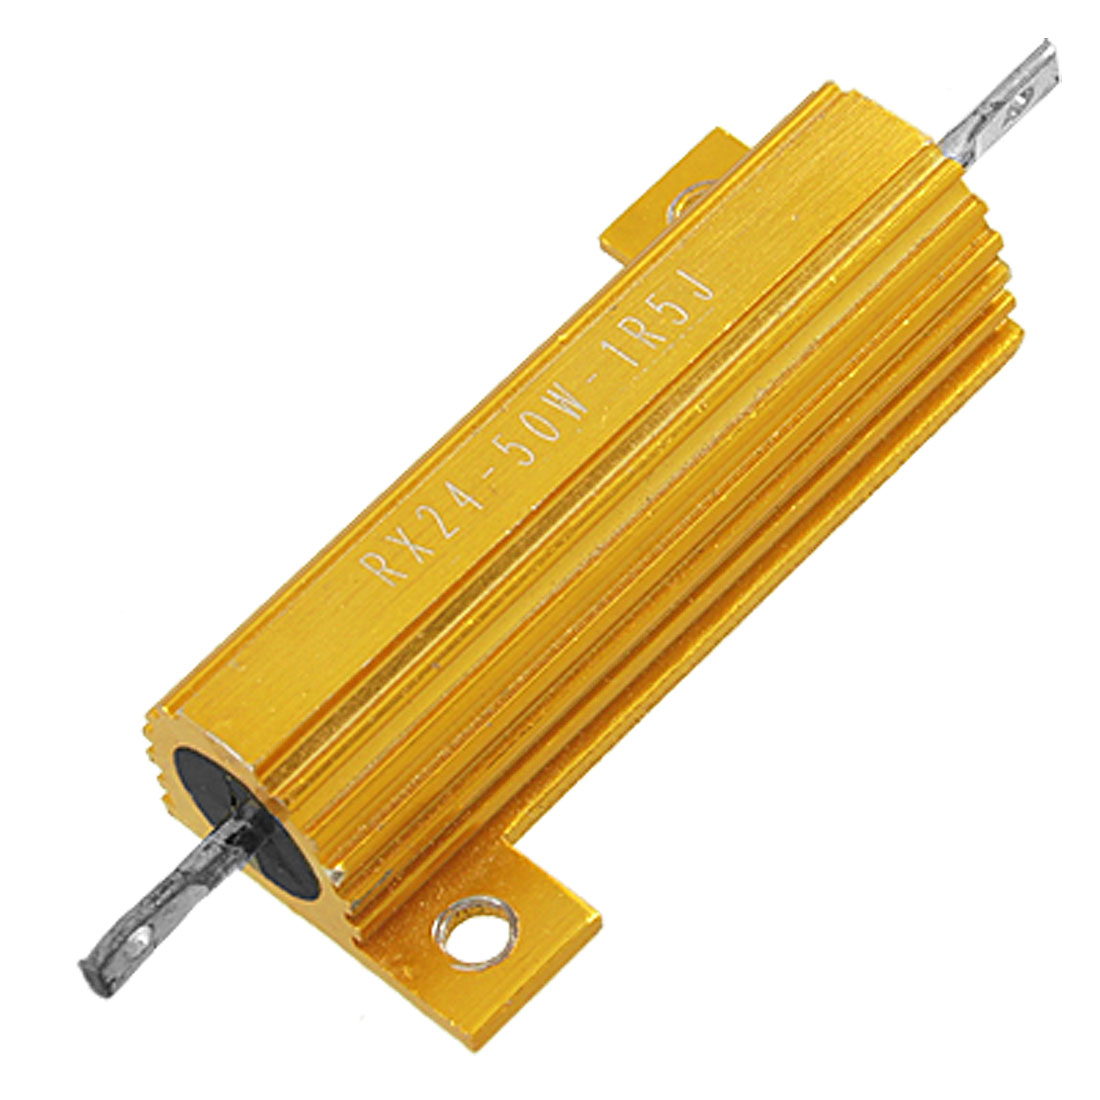 50W 1R5 1.5 Ohm 5% Wirewound Aluminium Housed Power Resistor Gold Tone